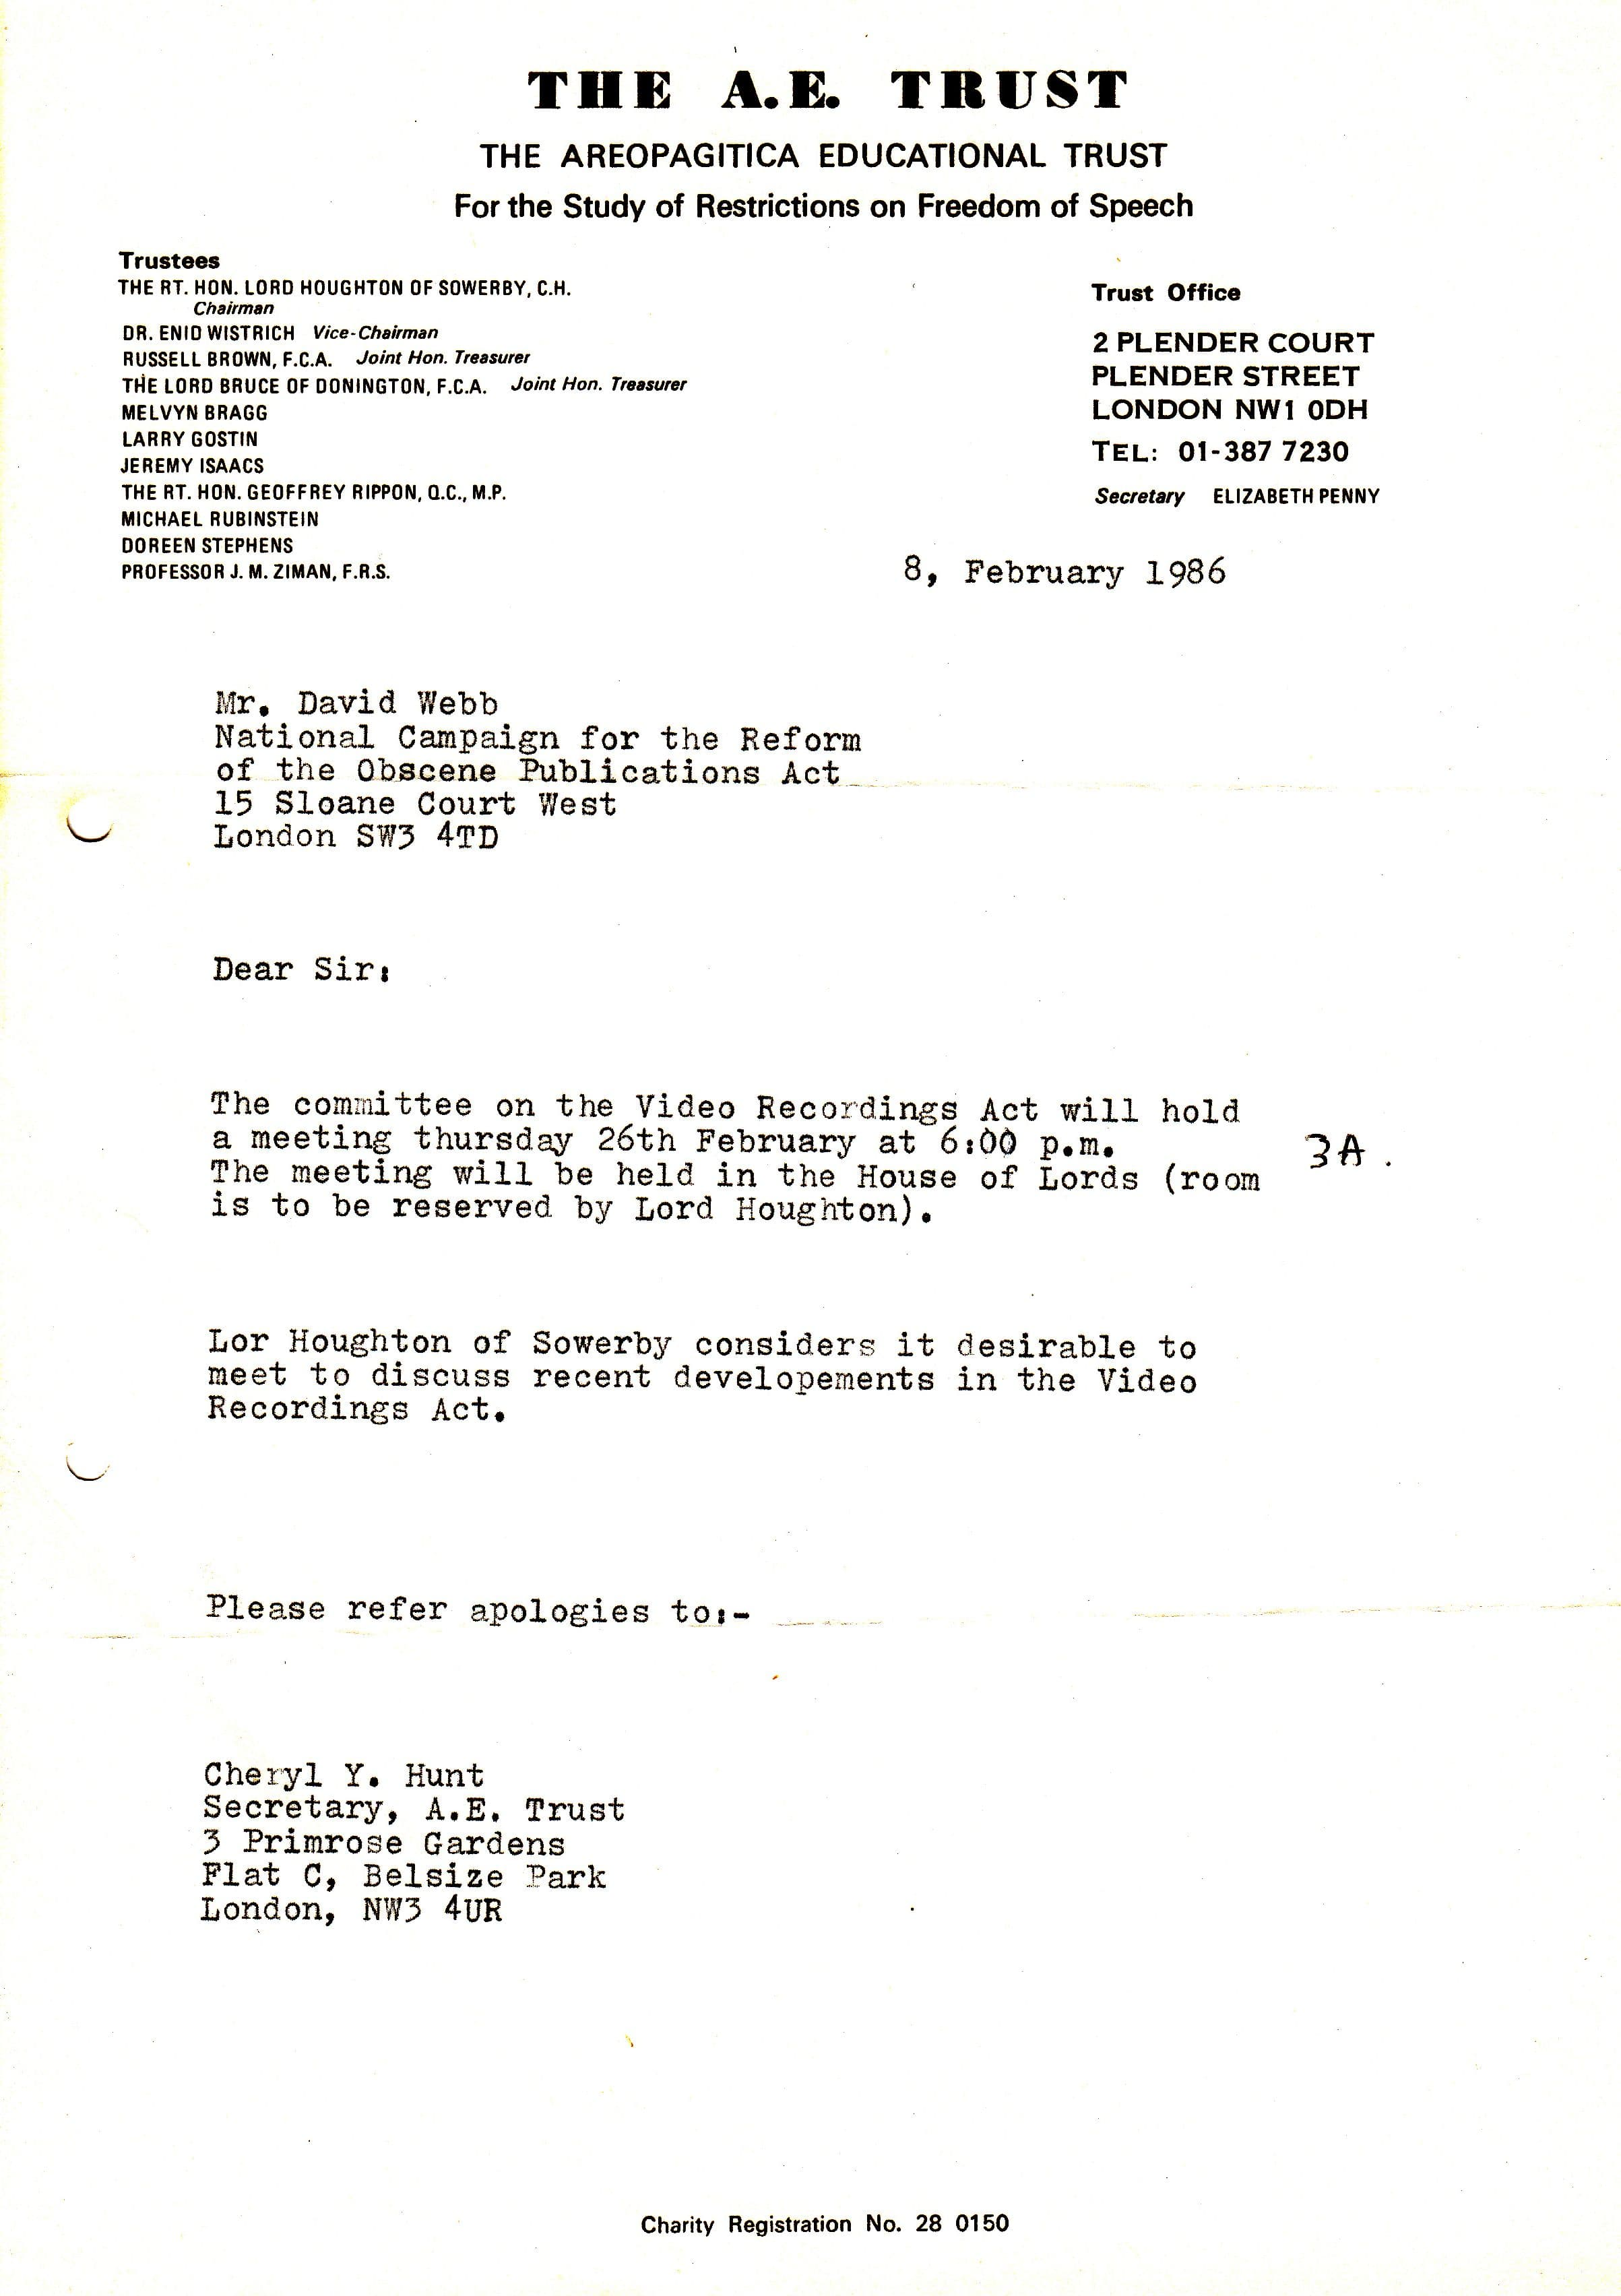 The ncropa archive 1986 28a letter john fraser of soimatar films ltd to ncropa february 11 1986 re the above see document 28 spiritdancerdesigns Images